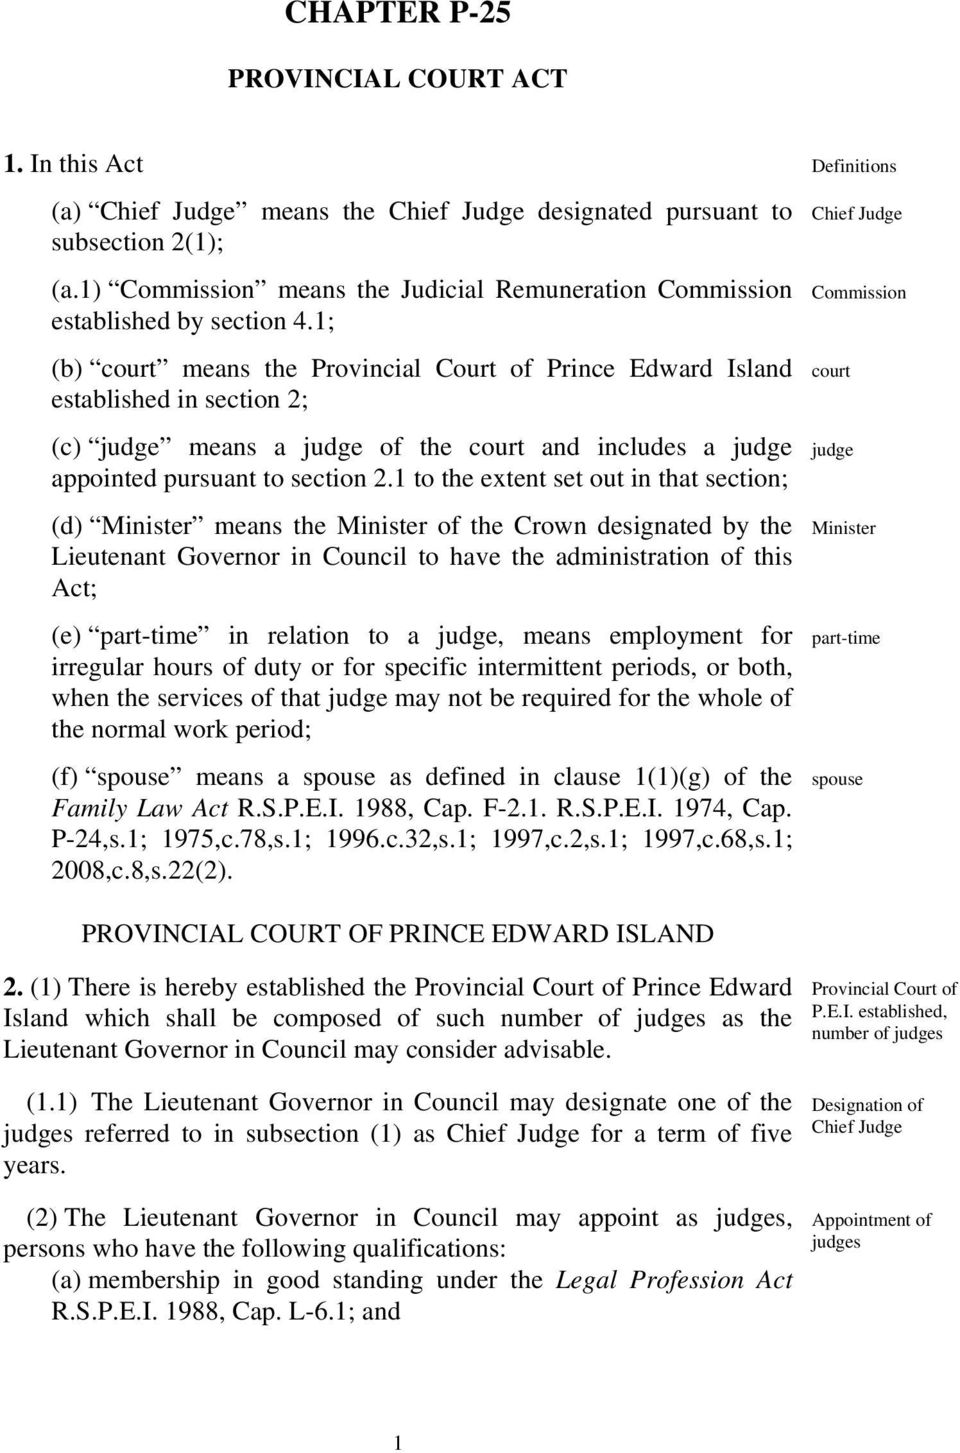 1; (b) court means the Provincial Court of Prince Edward Island established in section 2; (c) judge means a judge of the court and includes a judge appointed pursuant to section 2.